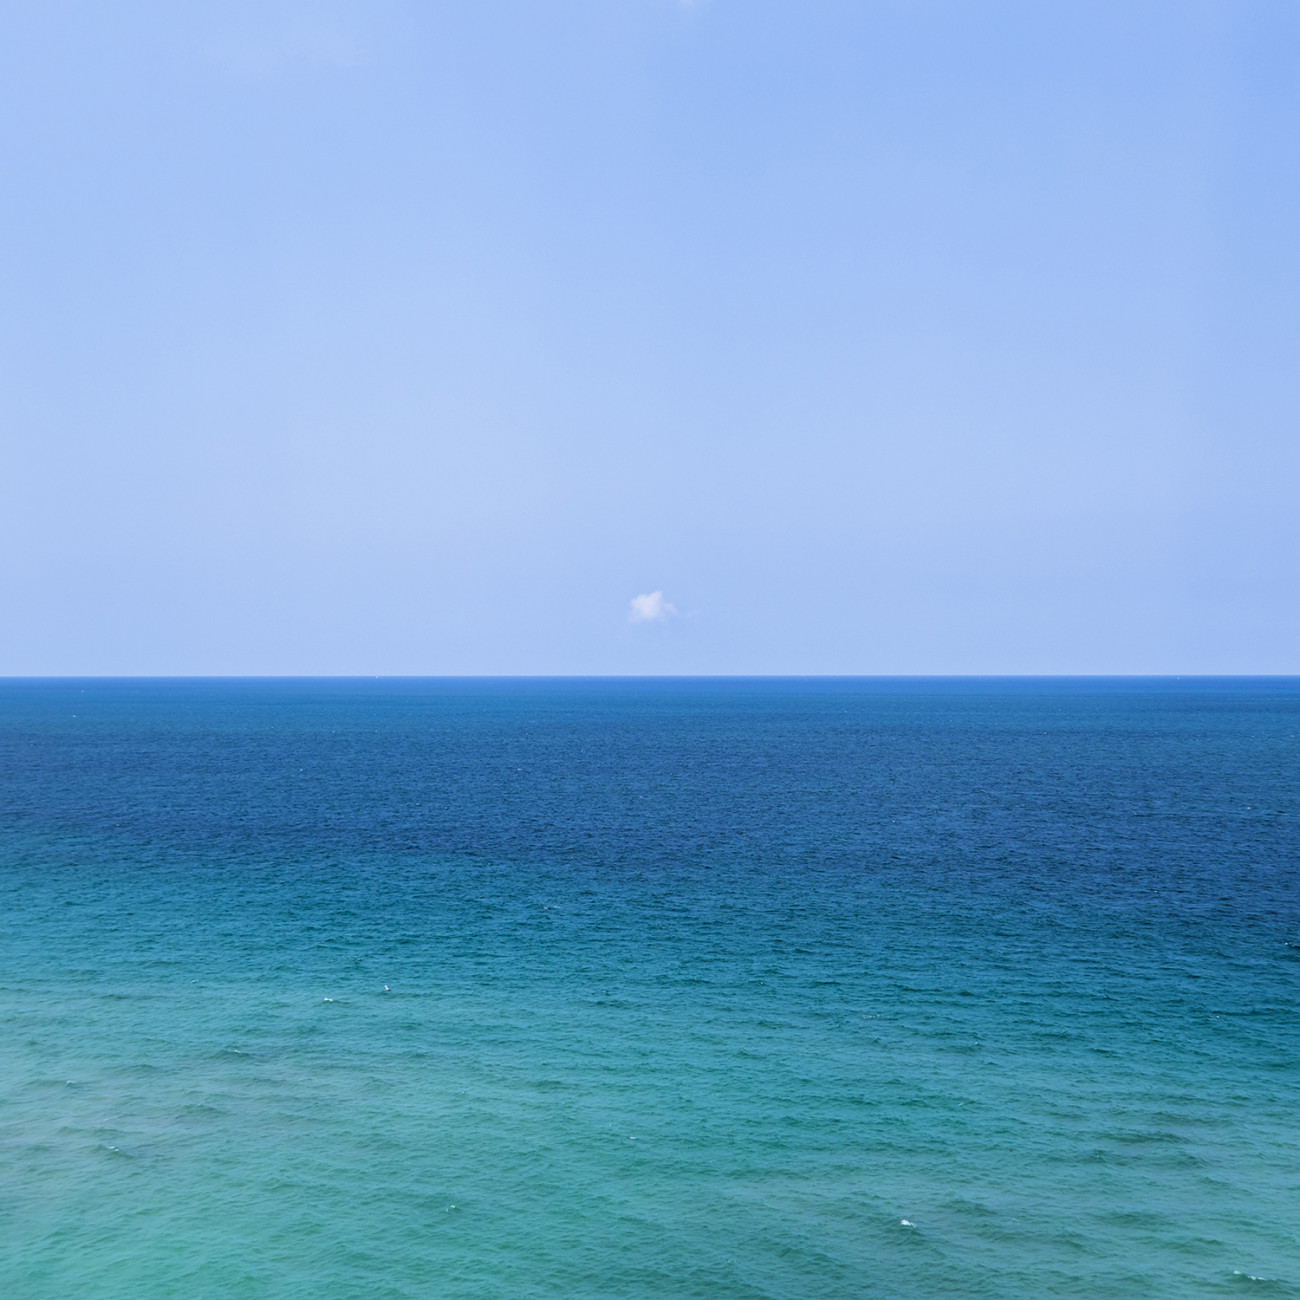 Lone cloud, Atlantic Ocean, 2015